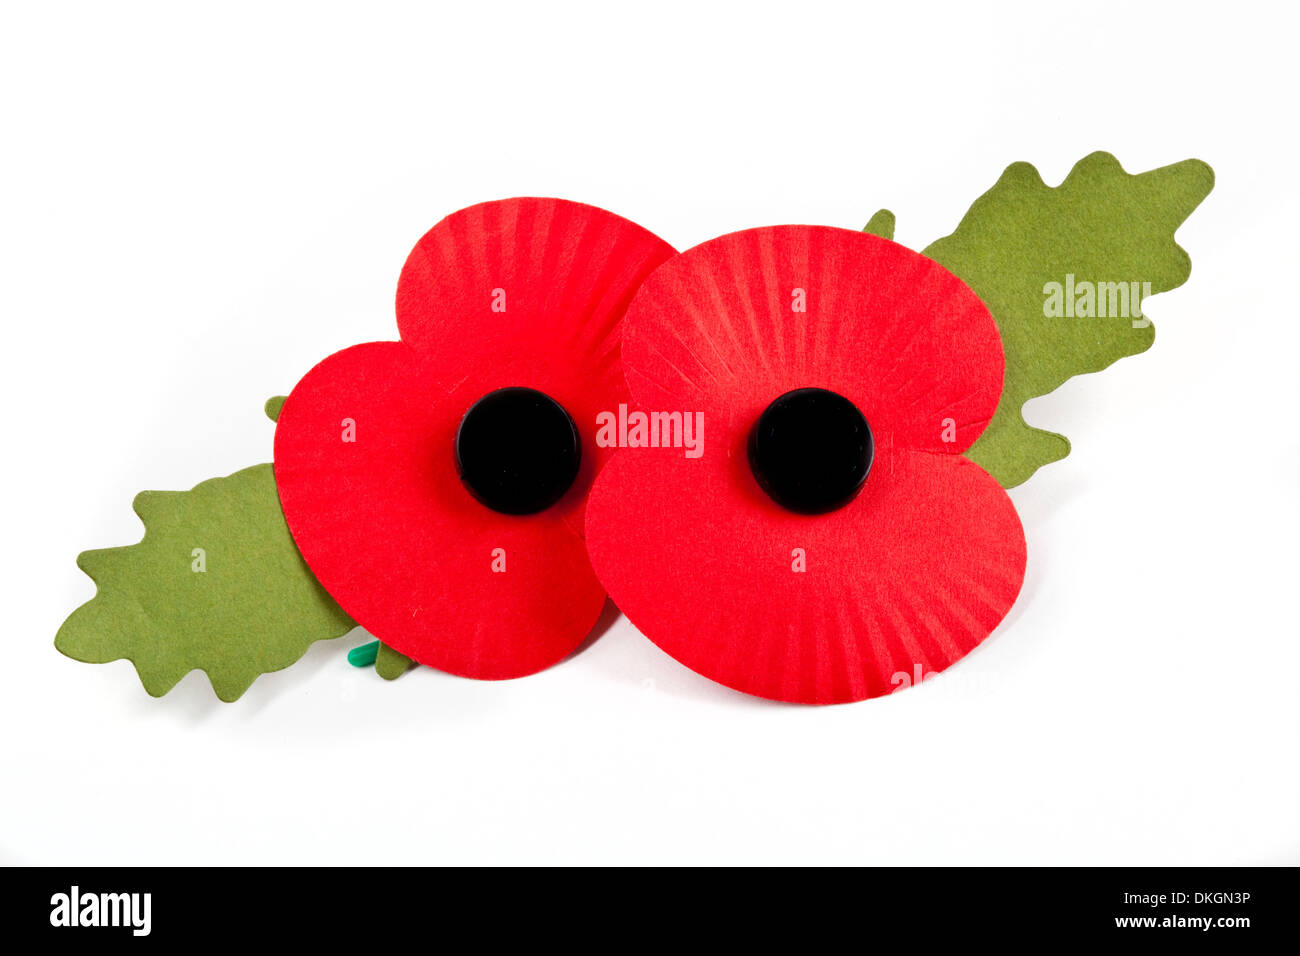 Poppies to commemorate the Commonwealth War Deaths in both World Wars. - Stock Image